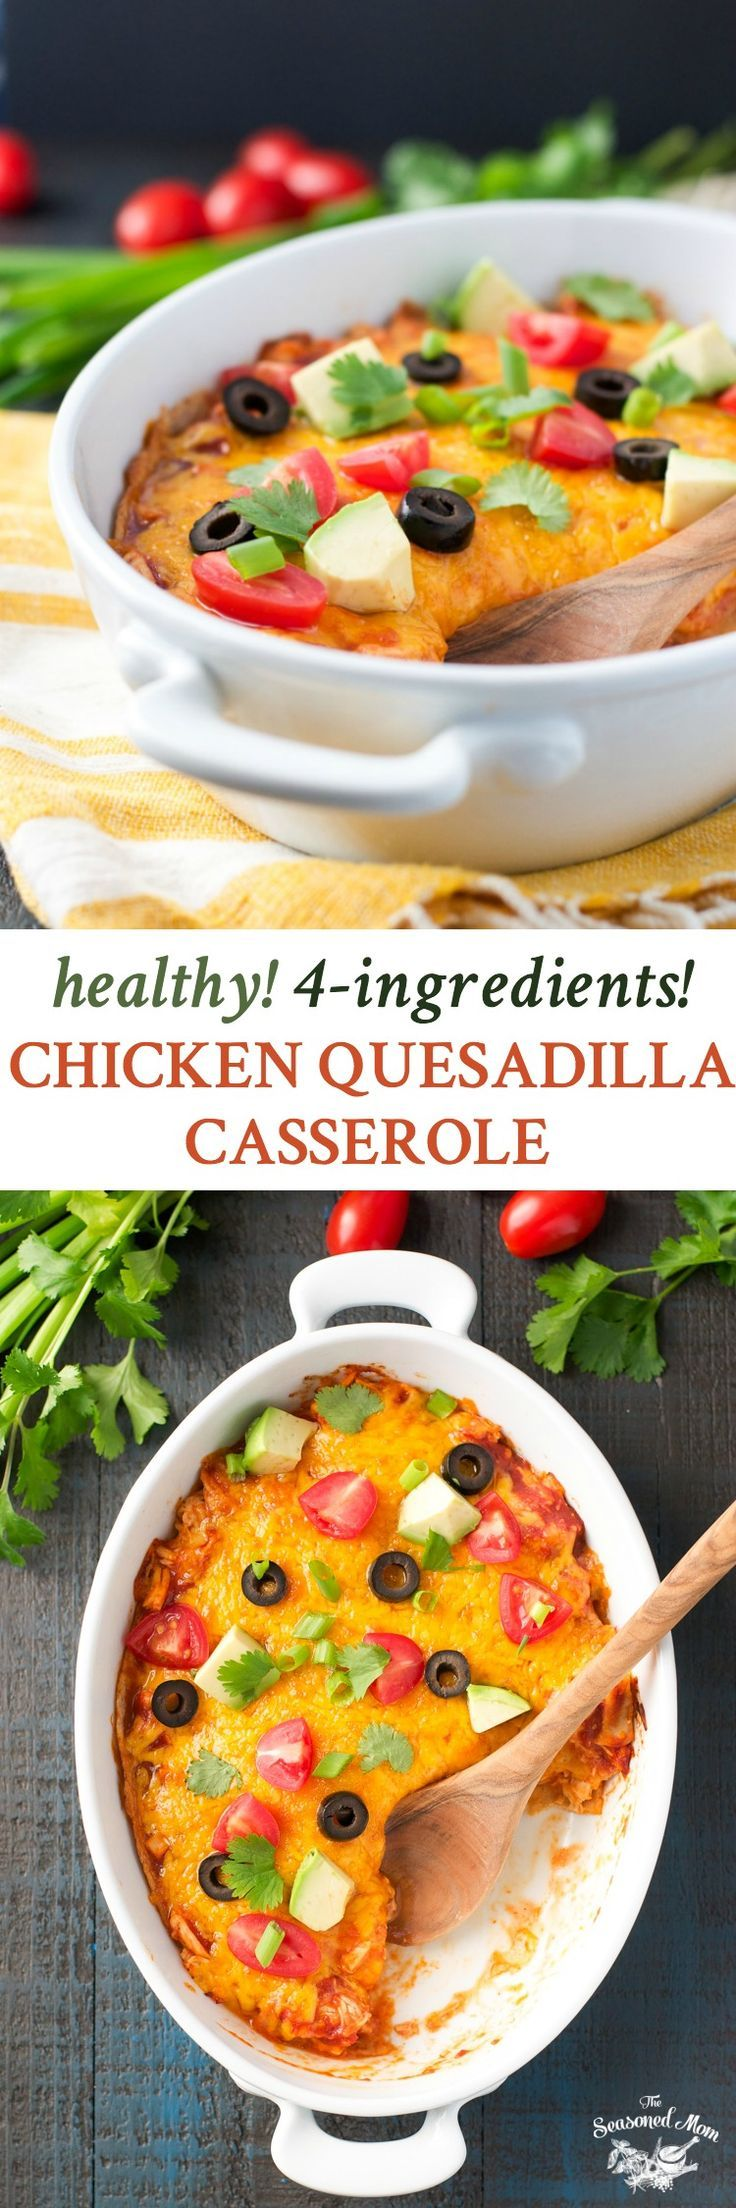 Just 5 minutes of prep for this Healthy 4-Ingredient Chicken Quesadilla Casserole! Dinner Recipes Healthy | Dinner Ideas | Quesadilla Recipes | Healthy Recipes | Healthy Dinner Recipes | Chicken Recipes